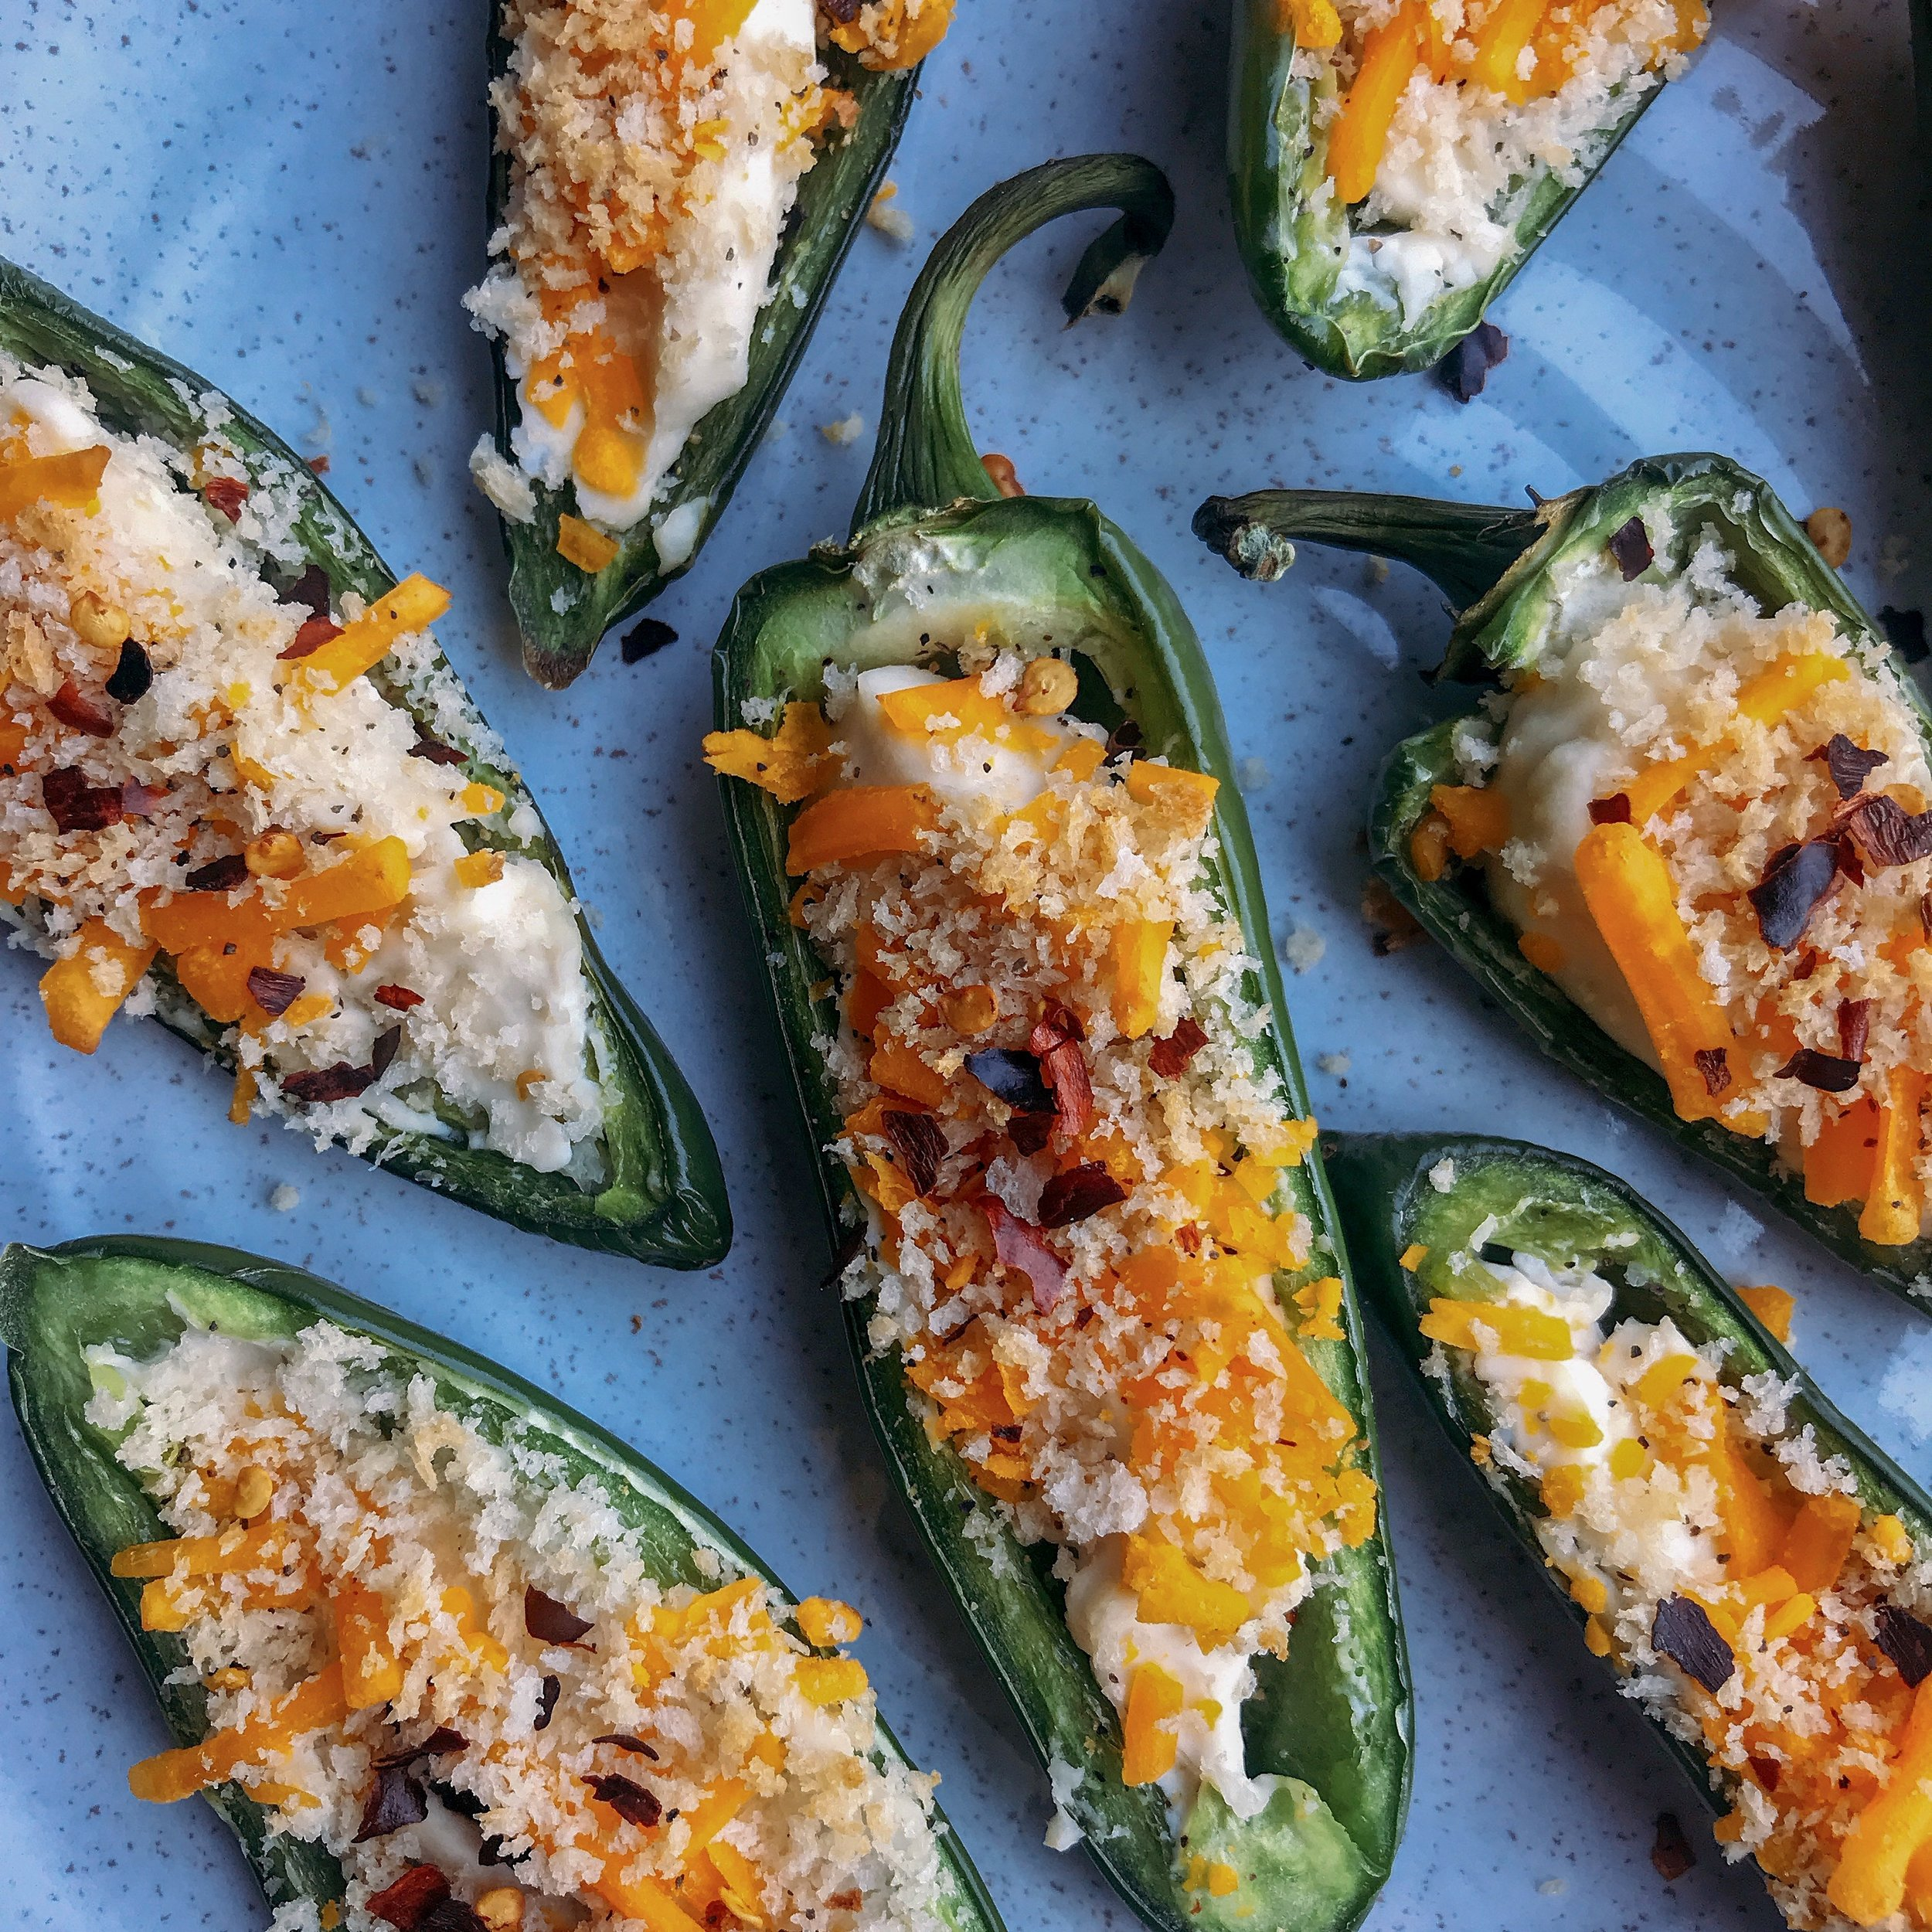 Dairy-free crunchy baked jalapeños for an afternoon snack or appetizer!